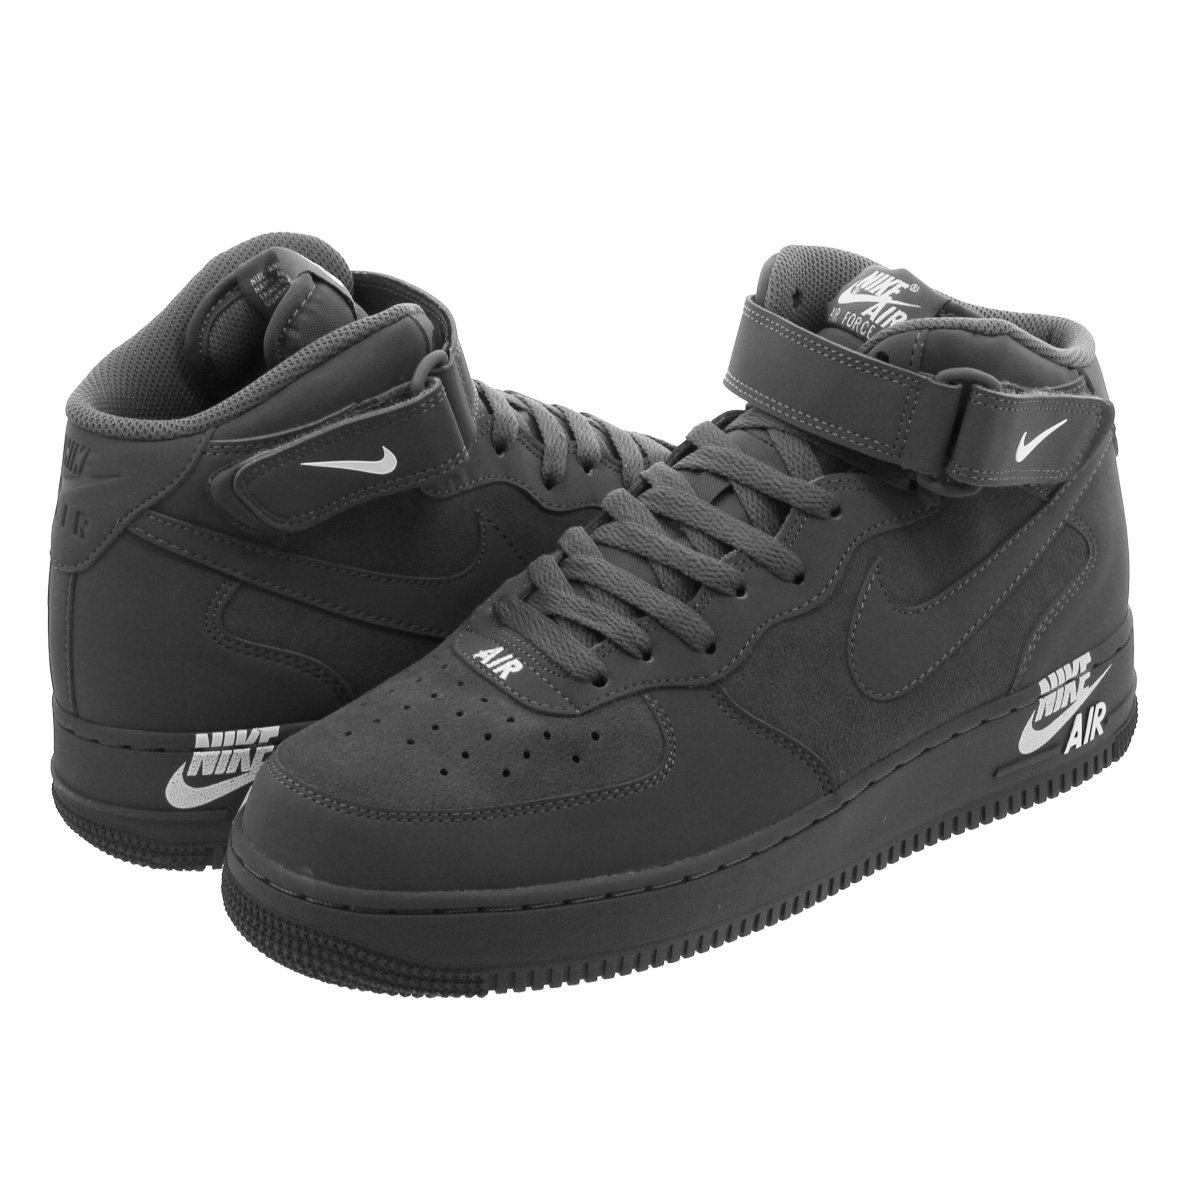 super popular 01ab9 946e2 NIKE AIR FORCE 1 MID '07 Nike air force 1 mid '07 DARK GREY/DARK GREY/WHITE  315,123-048